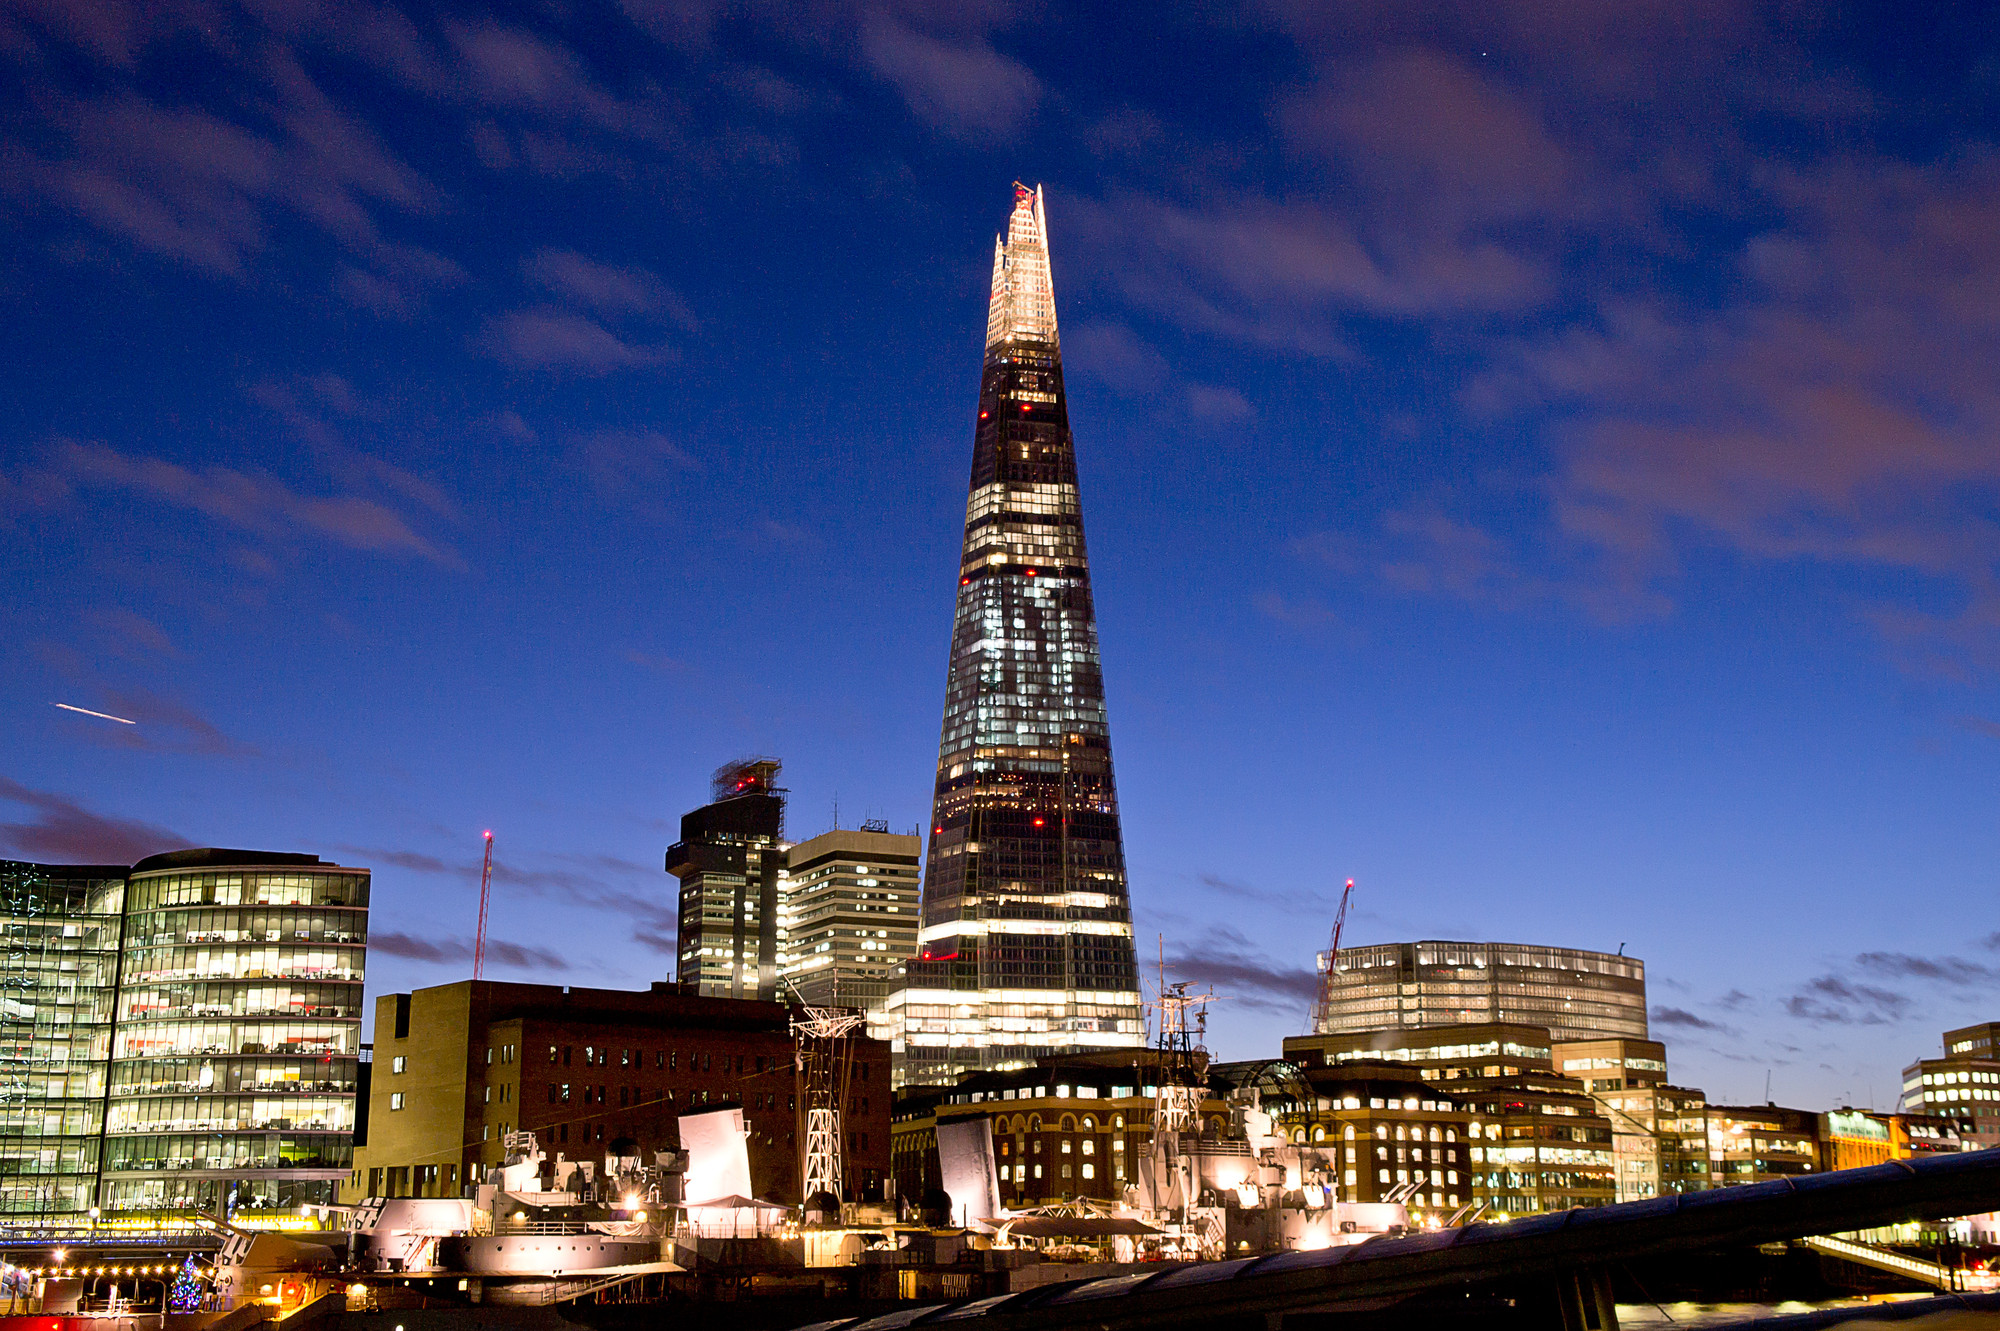 Shard Wins Emporis Skyscraper Award, The Shard / Renzo Piano. Image © Eric Smerling